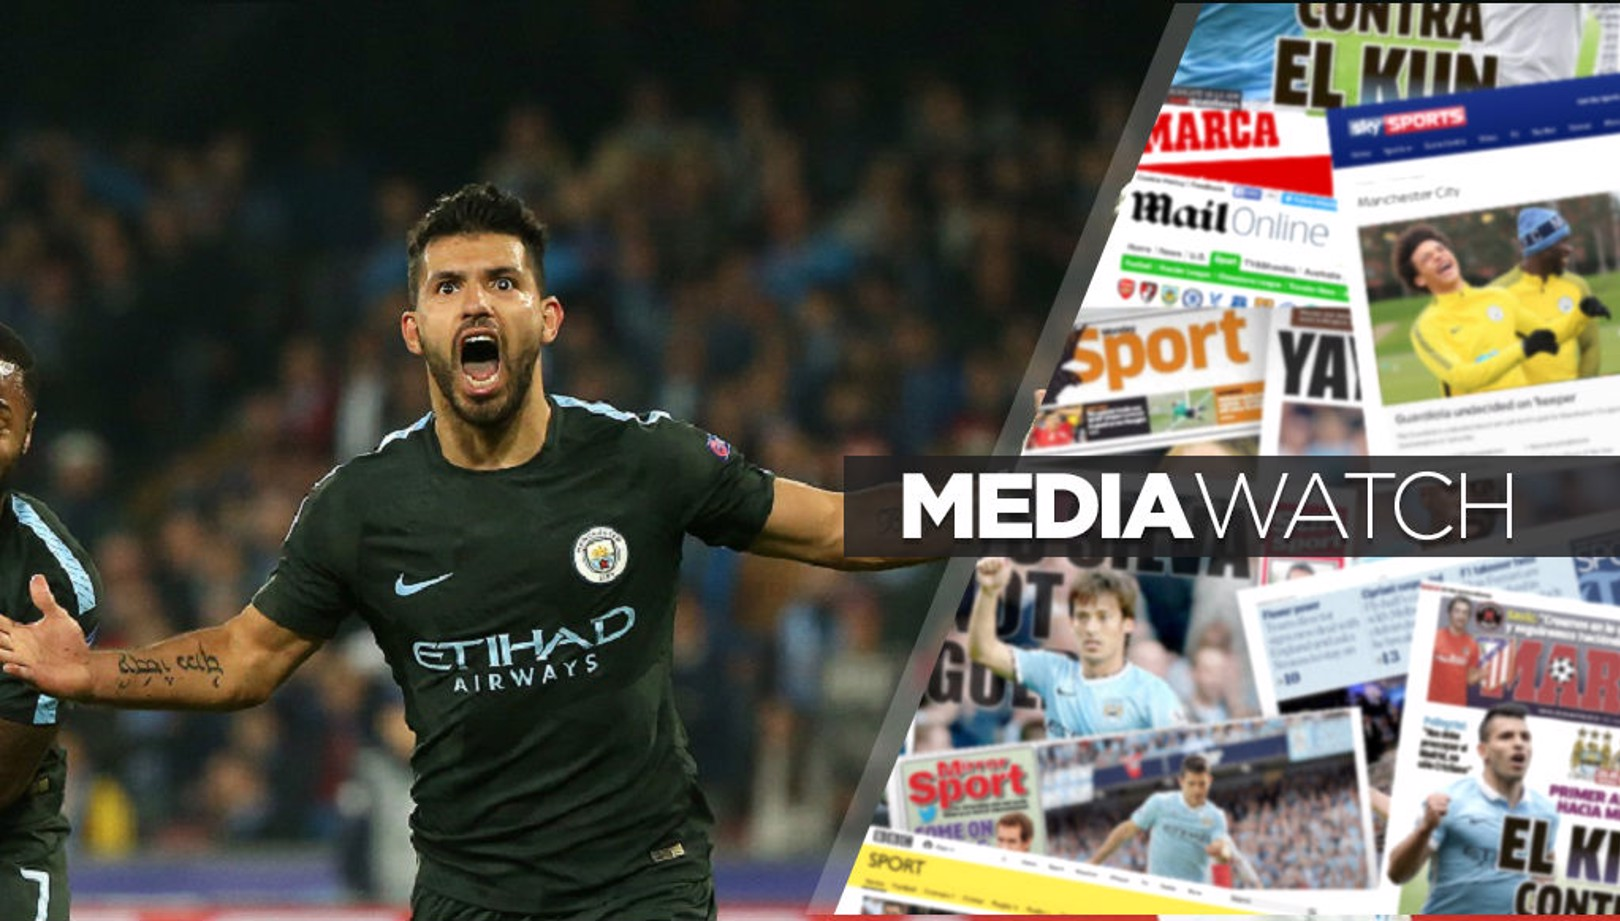 178 NOT OUT: Press react to Sergio's record goal